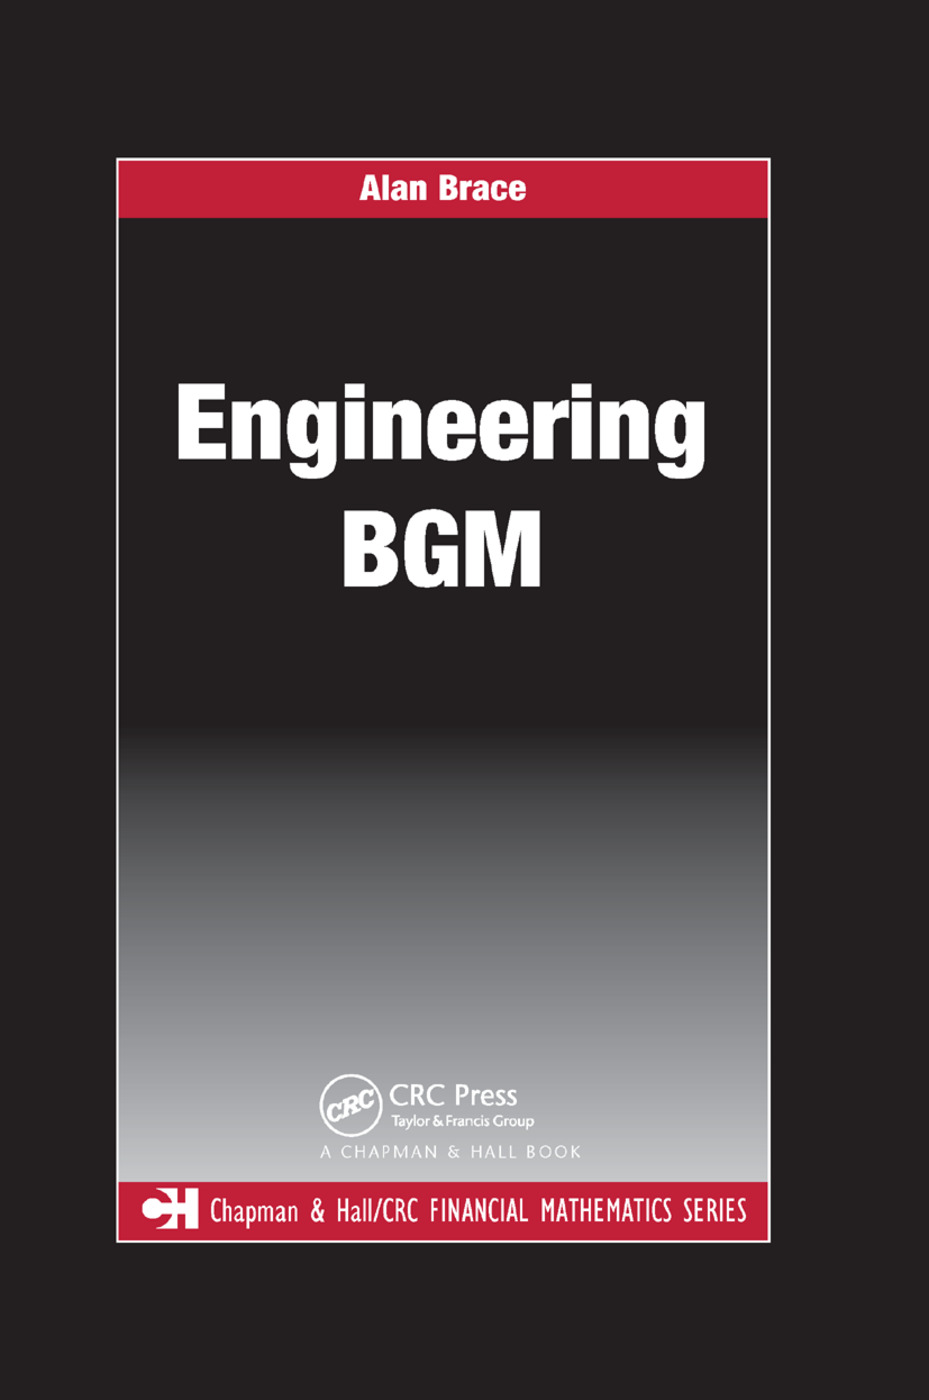 Engineering BGM book cover